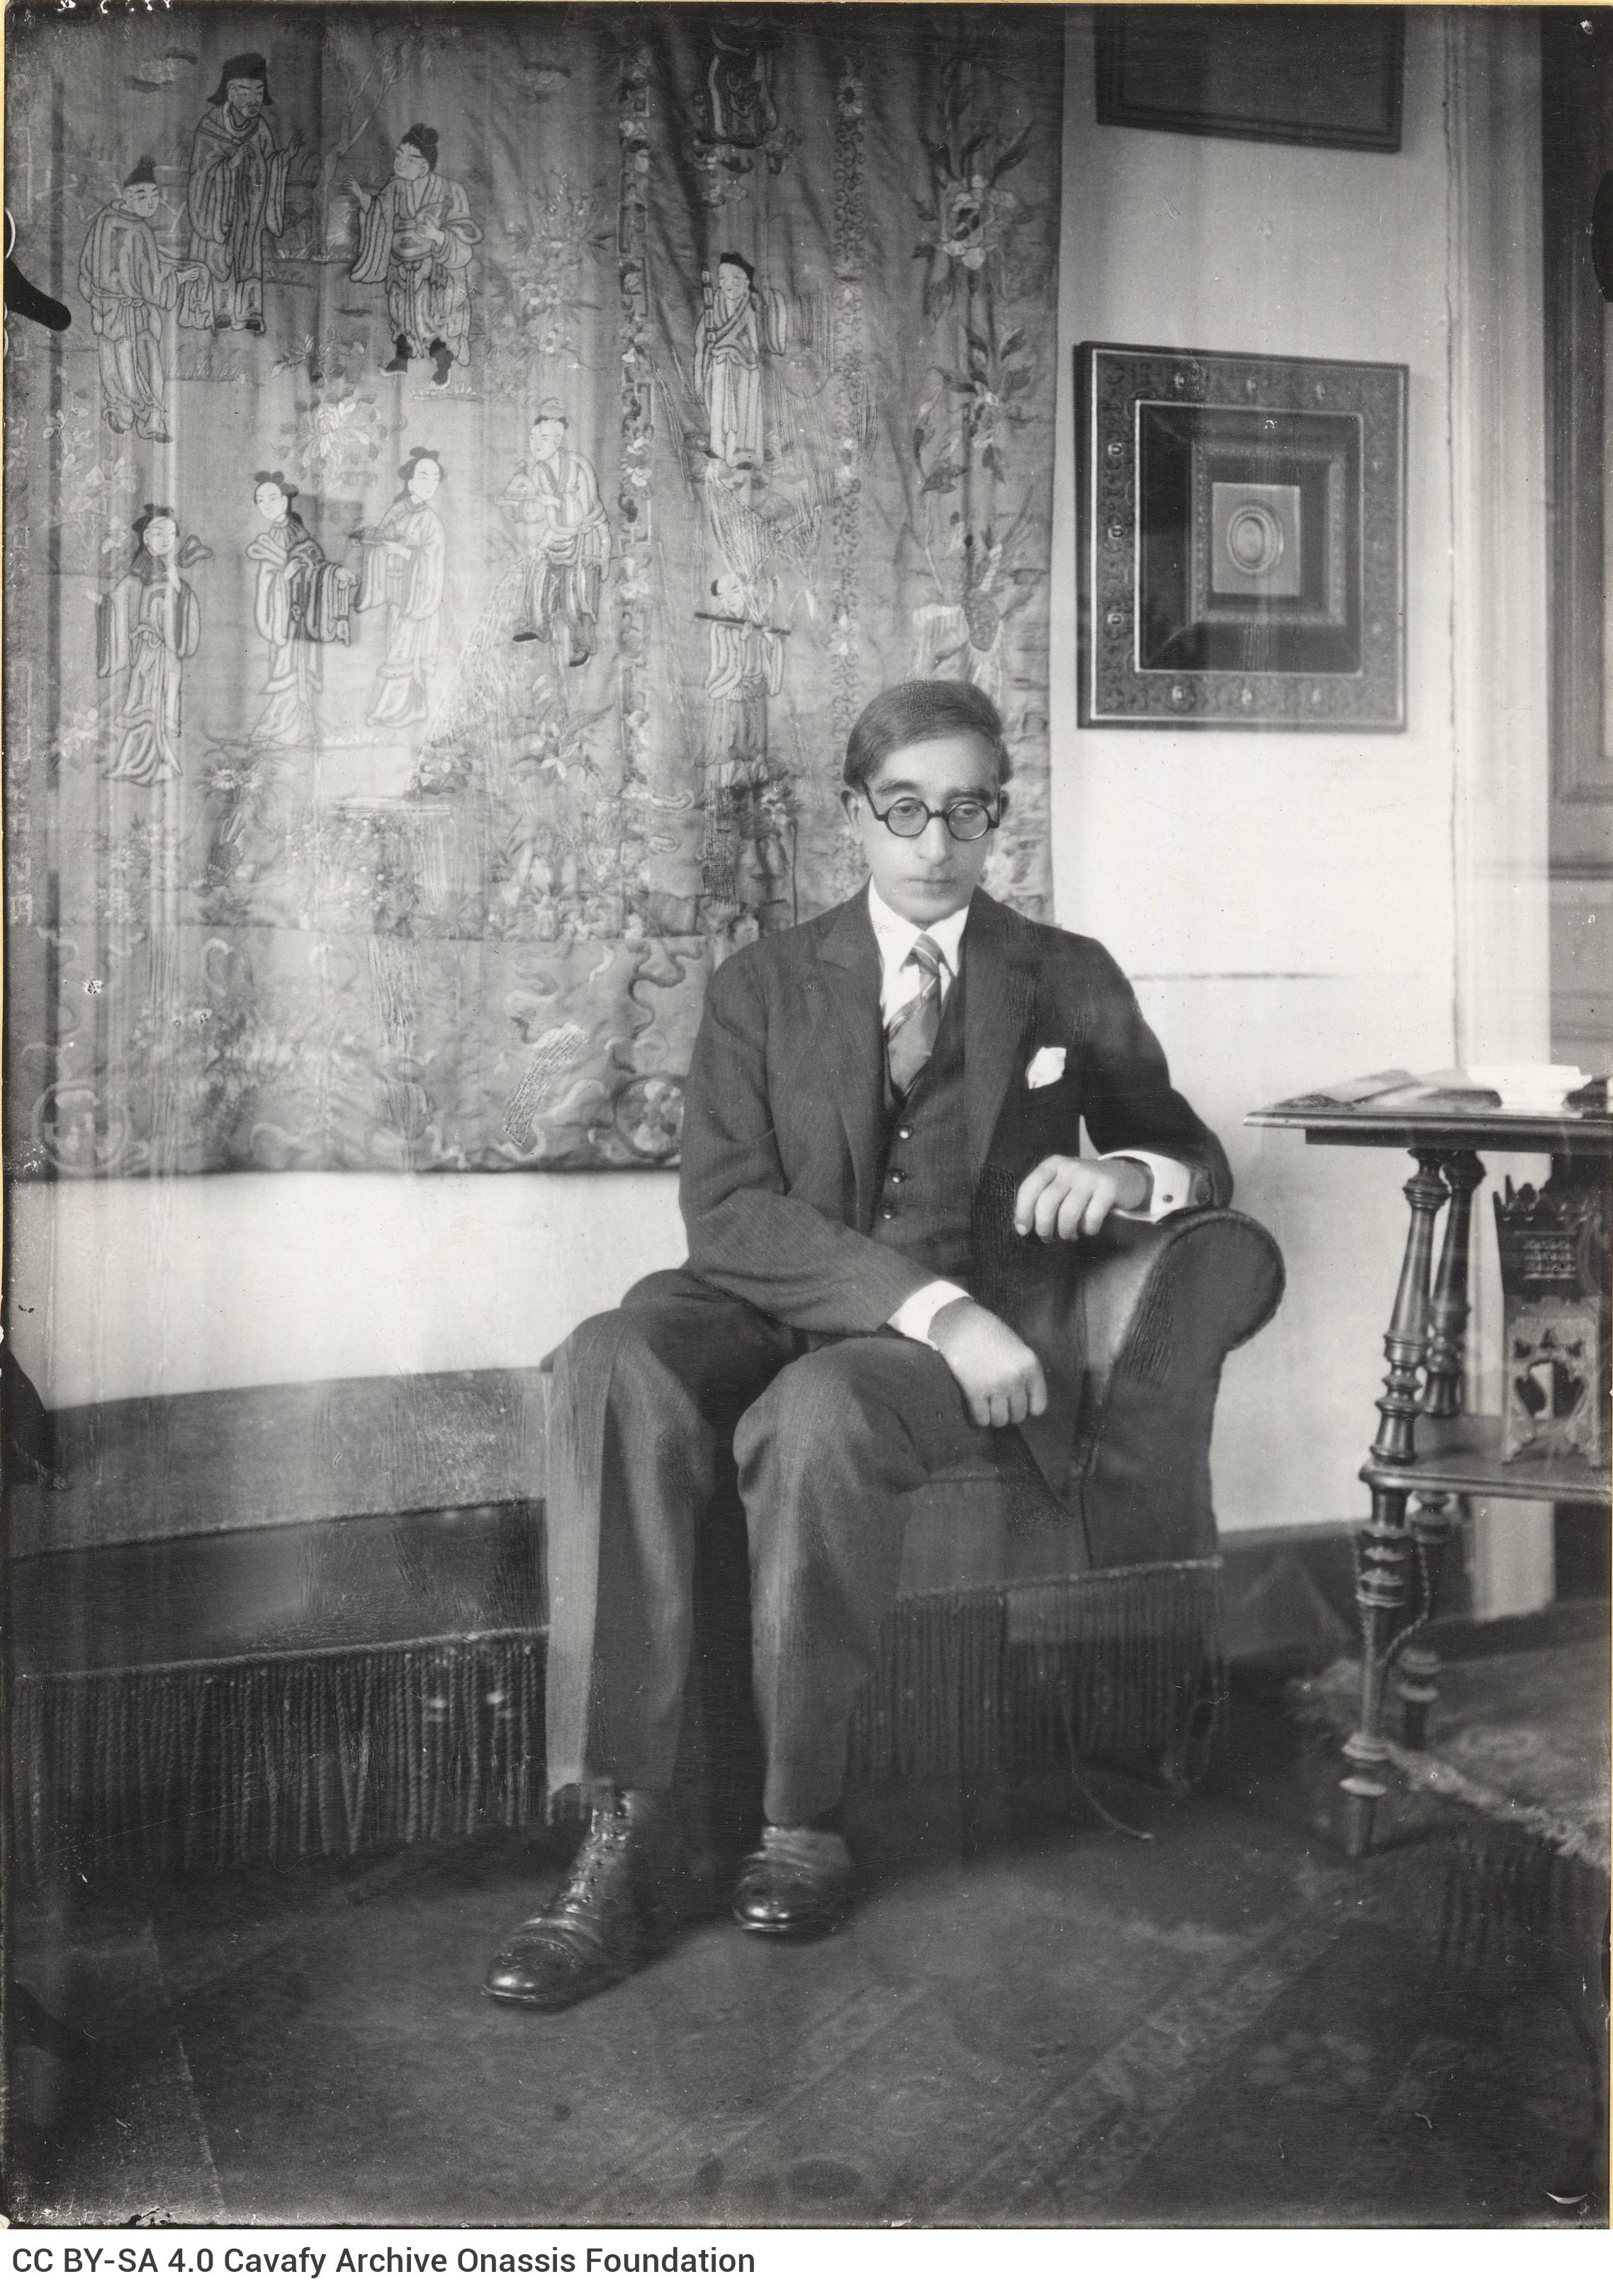 The Cavafy Archive Is Constituted By A Large Number Of Manuscripts, Makeshift Collections Of Poems And Prose Works, Articles, Drafts And Notes Of C. P. Cavafy, As Well As The Personal Archive Of The Poet Comprising His Correspondence And Collection Of Photographs. It Also Includes The Singopoulos Archive, As A Distinct Archival Unit Amassing Material Pertaining To The Poet, And The Archive Of Alexandrini Techni.